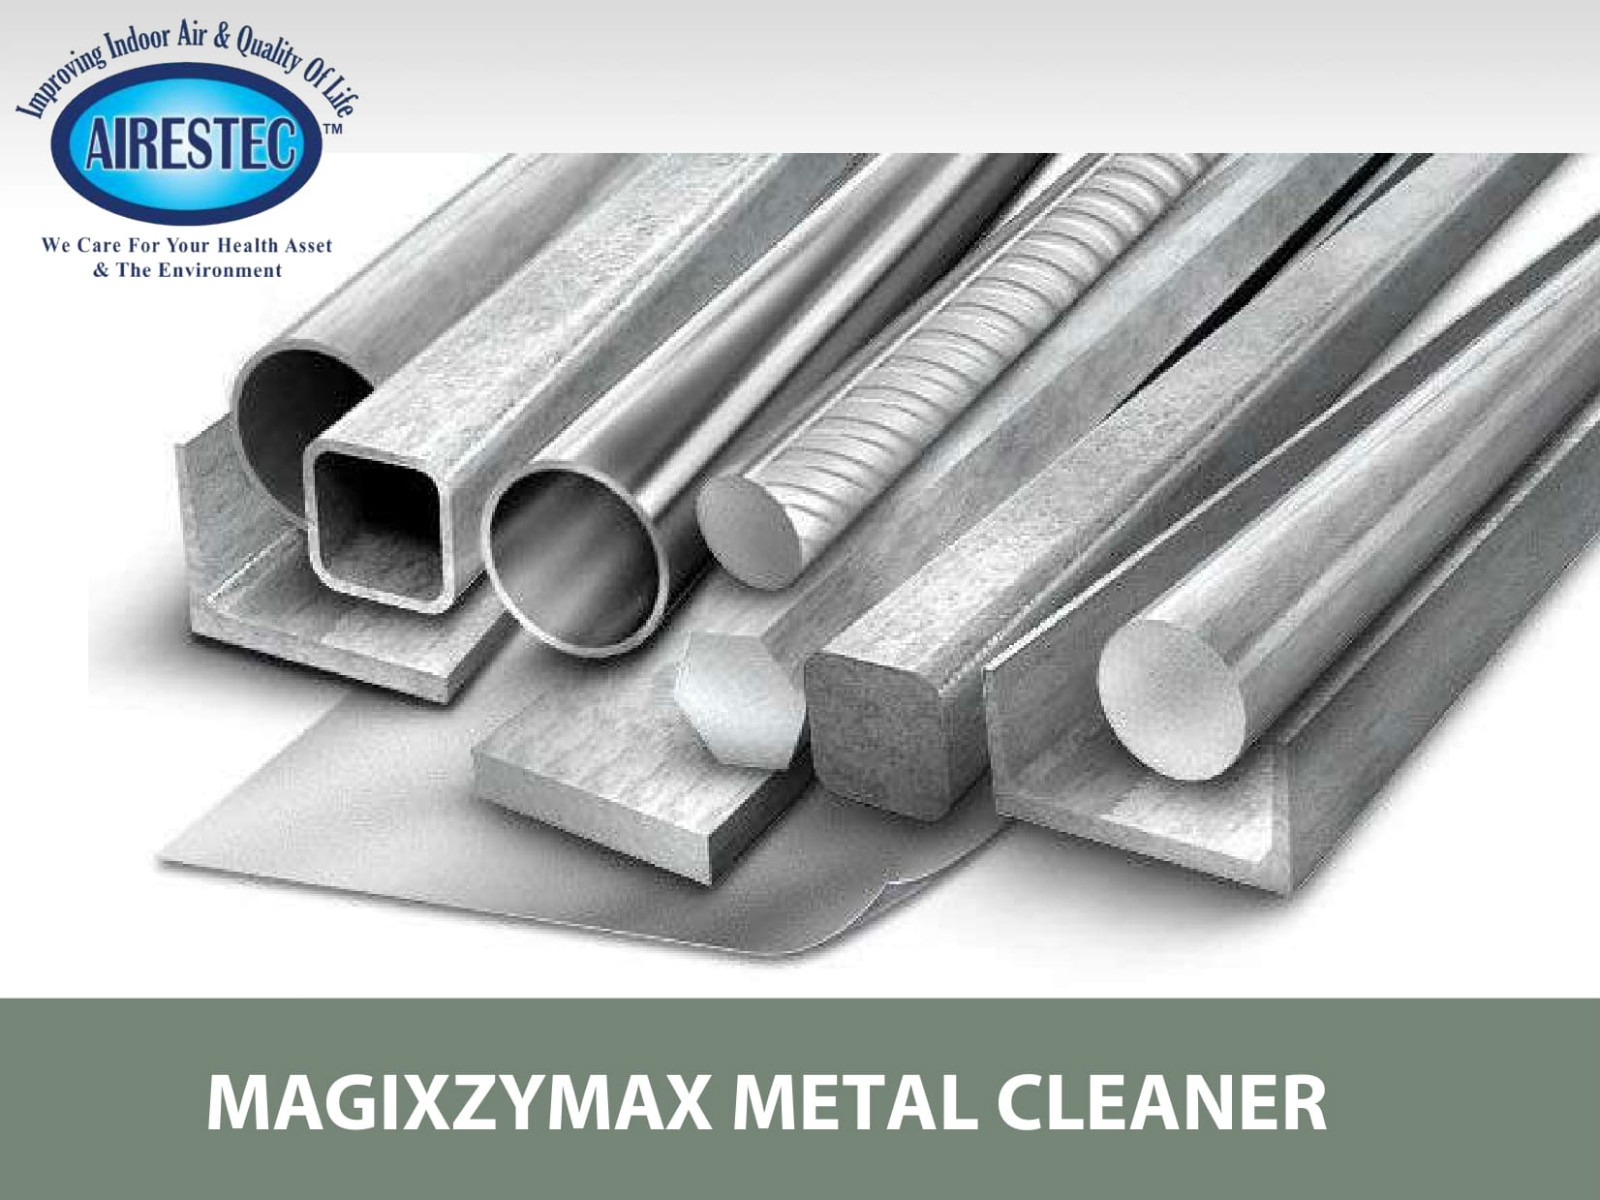 Magixzymax Metal Cleaner